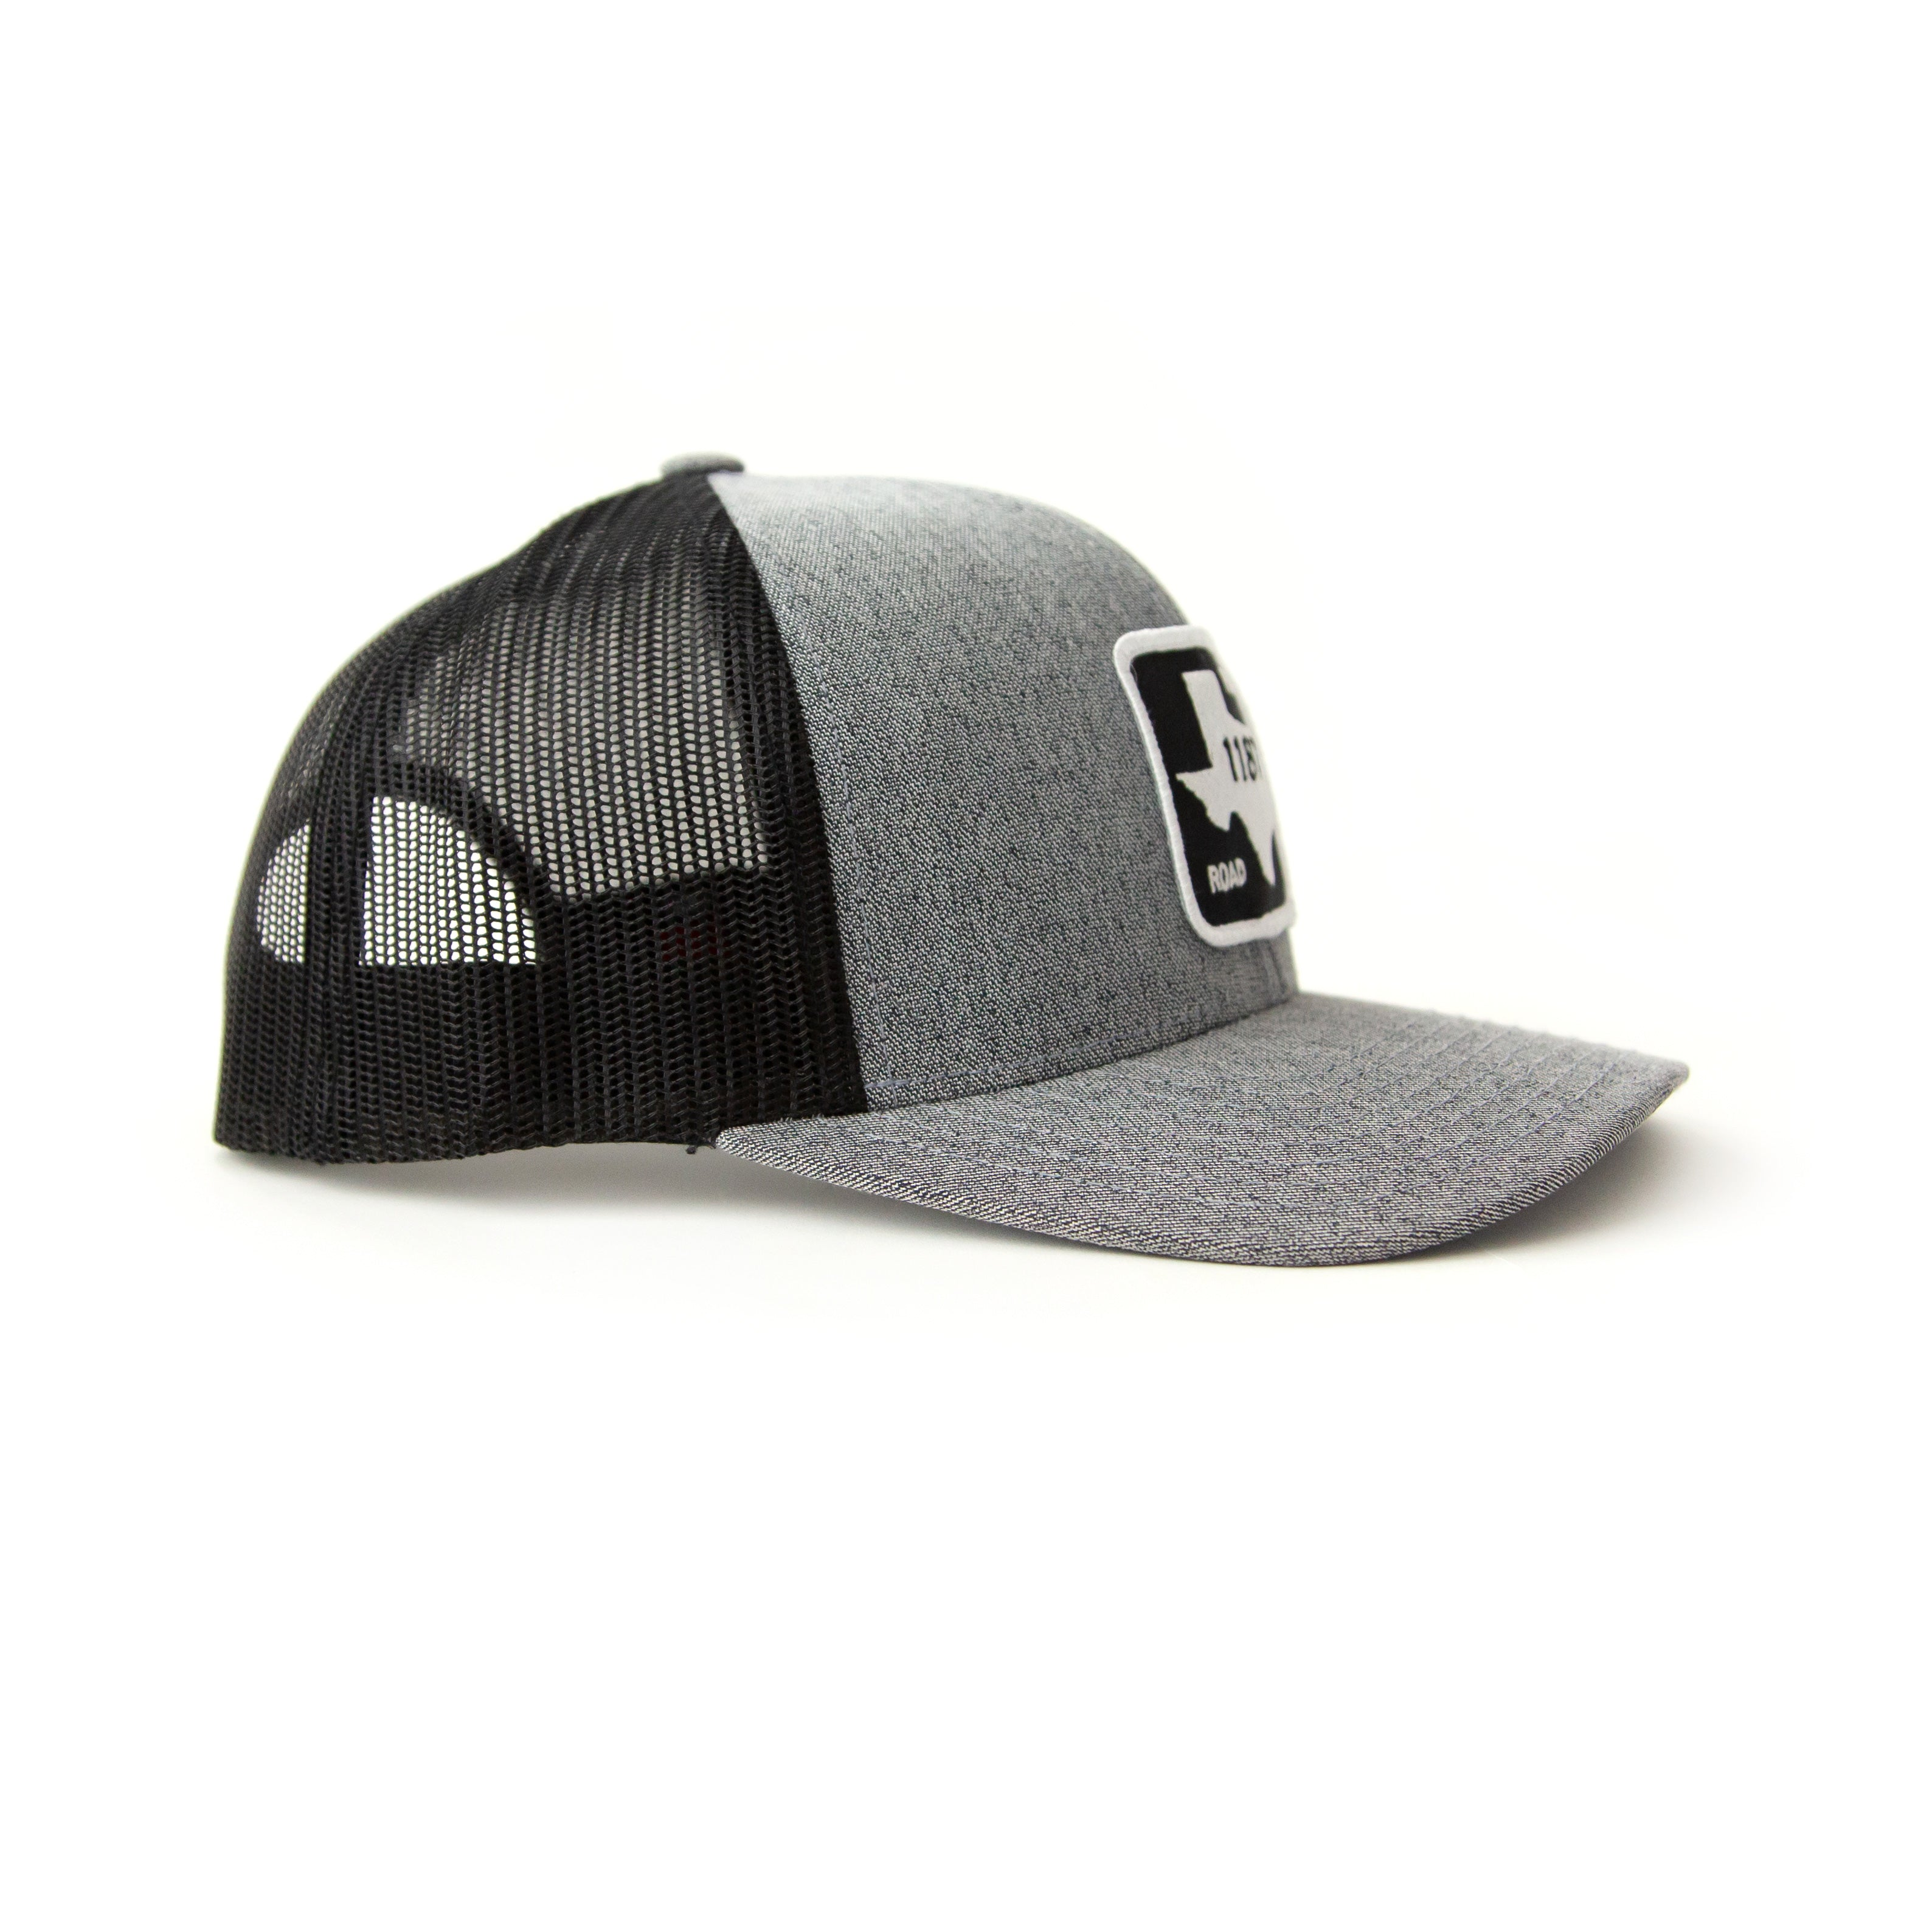 1187 Patch Trucker Hat